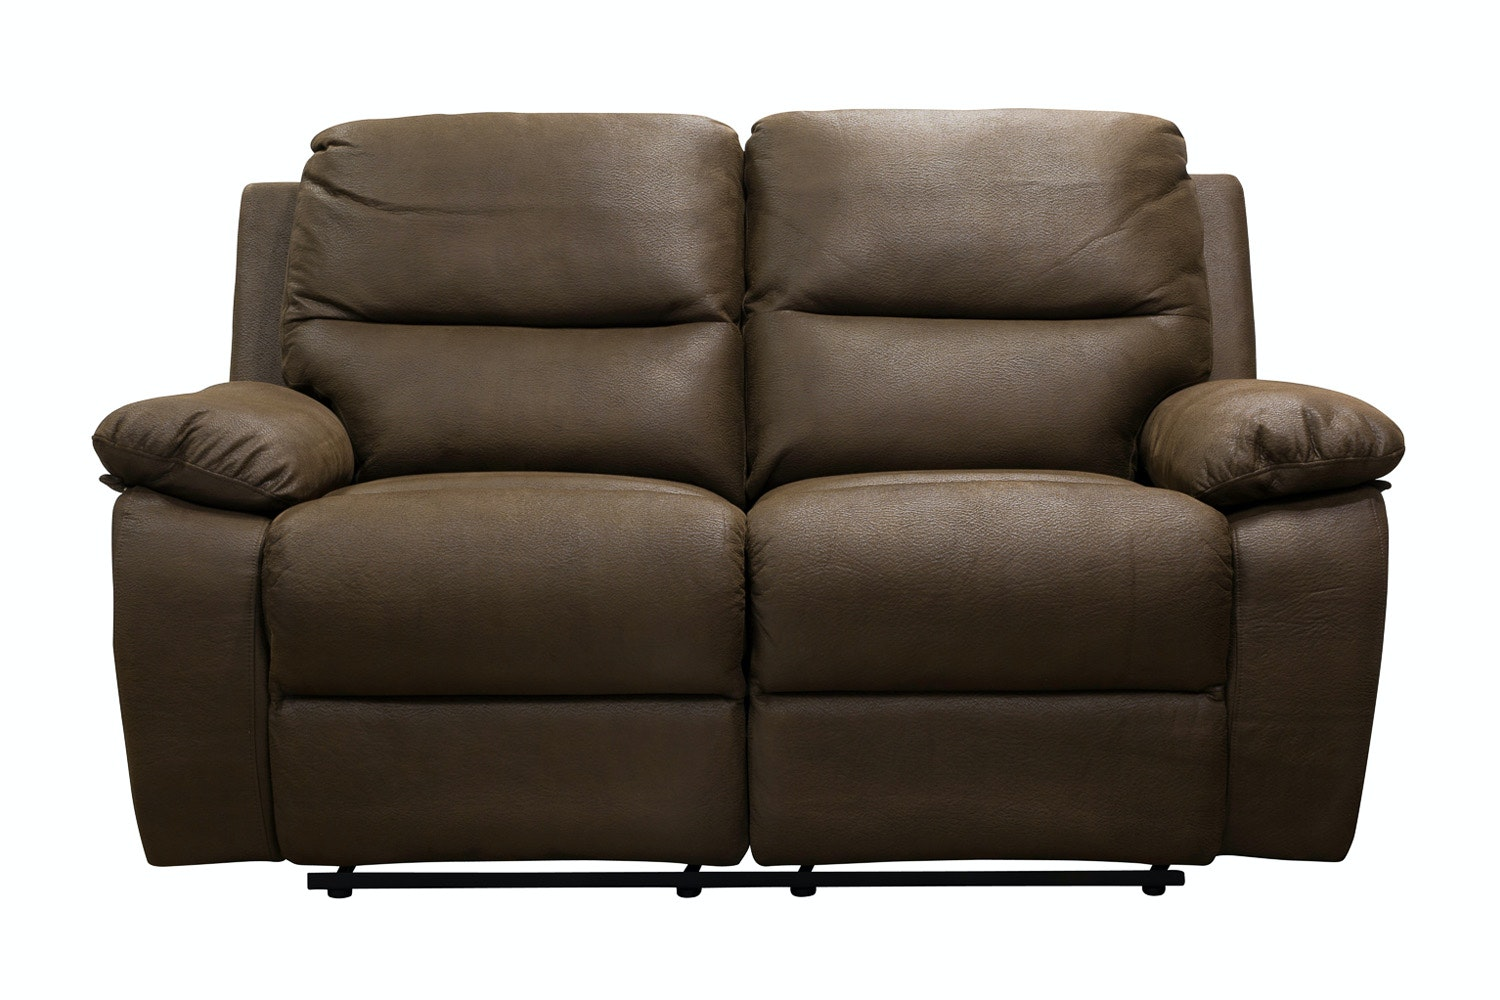 Paolo 2 Seater Recliner